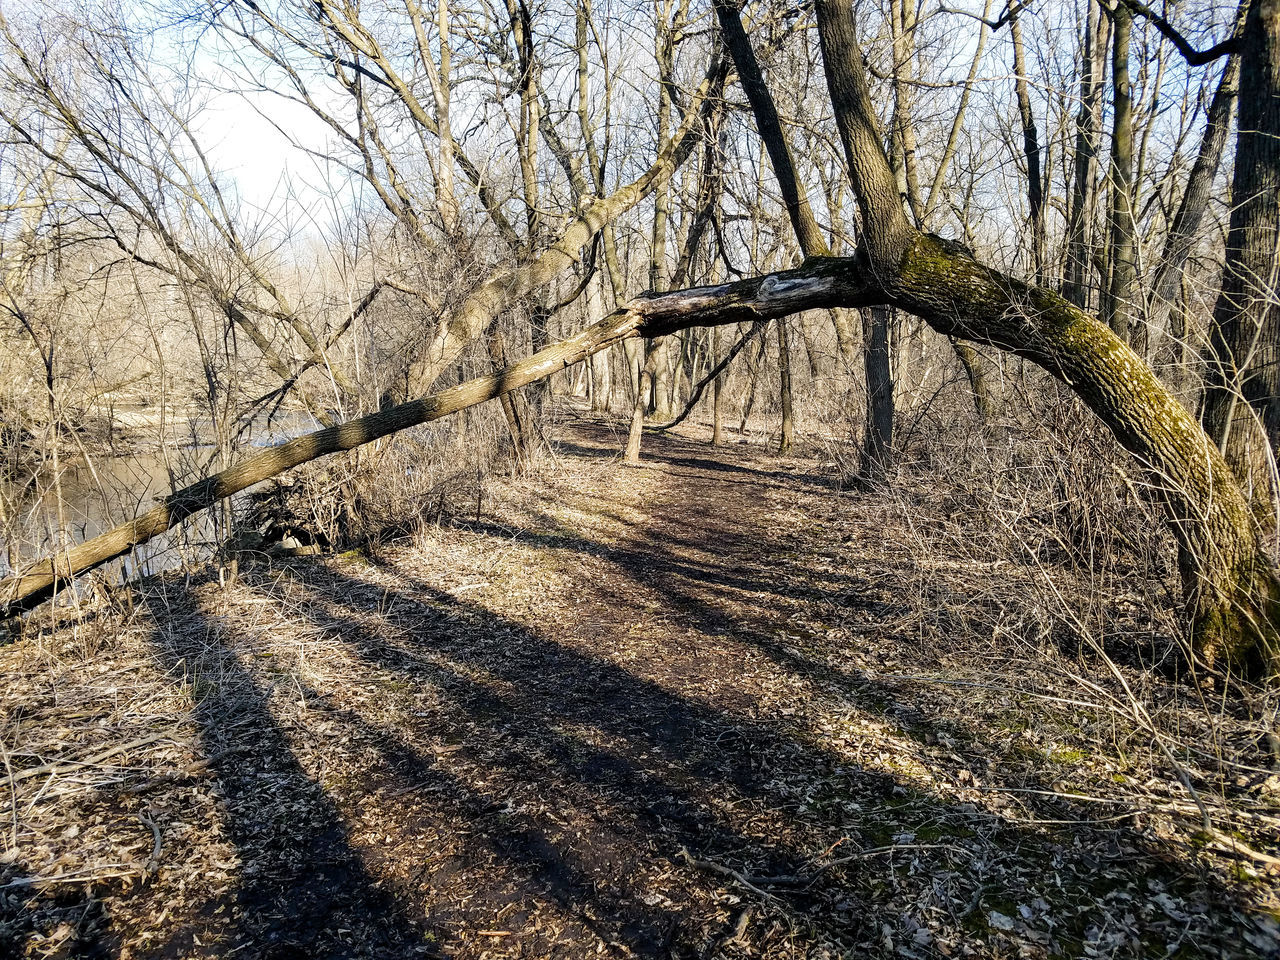 Tree Nature No People Outdoors Sky Day Landscape Bare Trees Explore Trees Minnesota Paynesville Nature Park  Fallen Tree Spring Springtime March Branch Beauty In Nature Forest Sunlight Crow River Nature Park Walking Trail